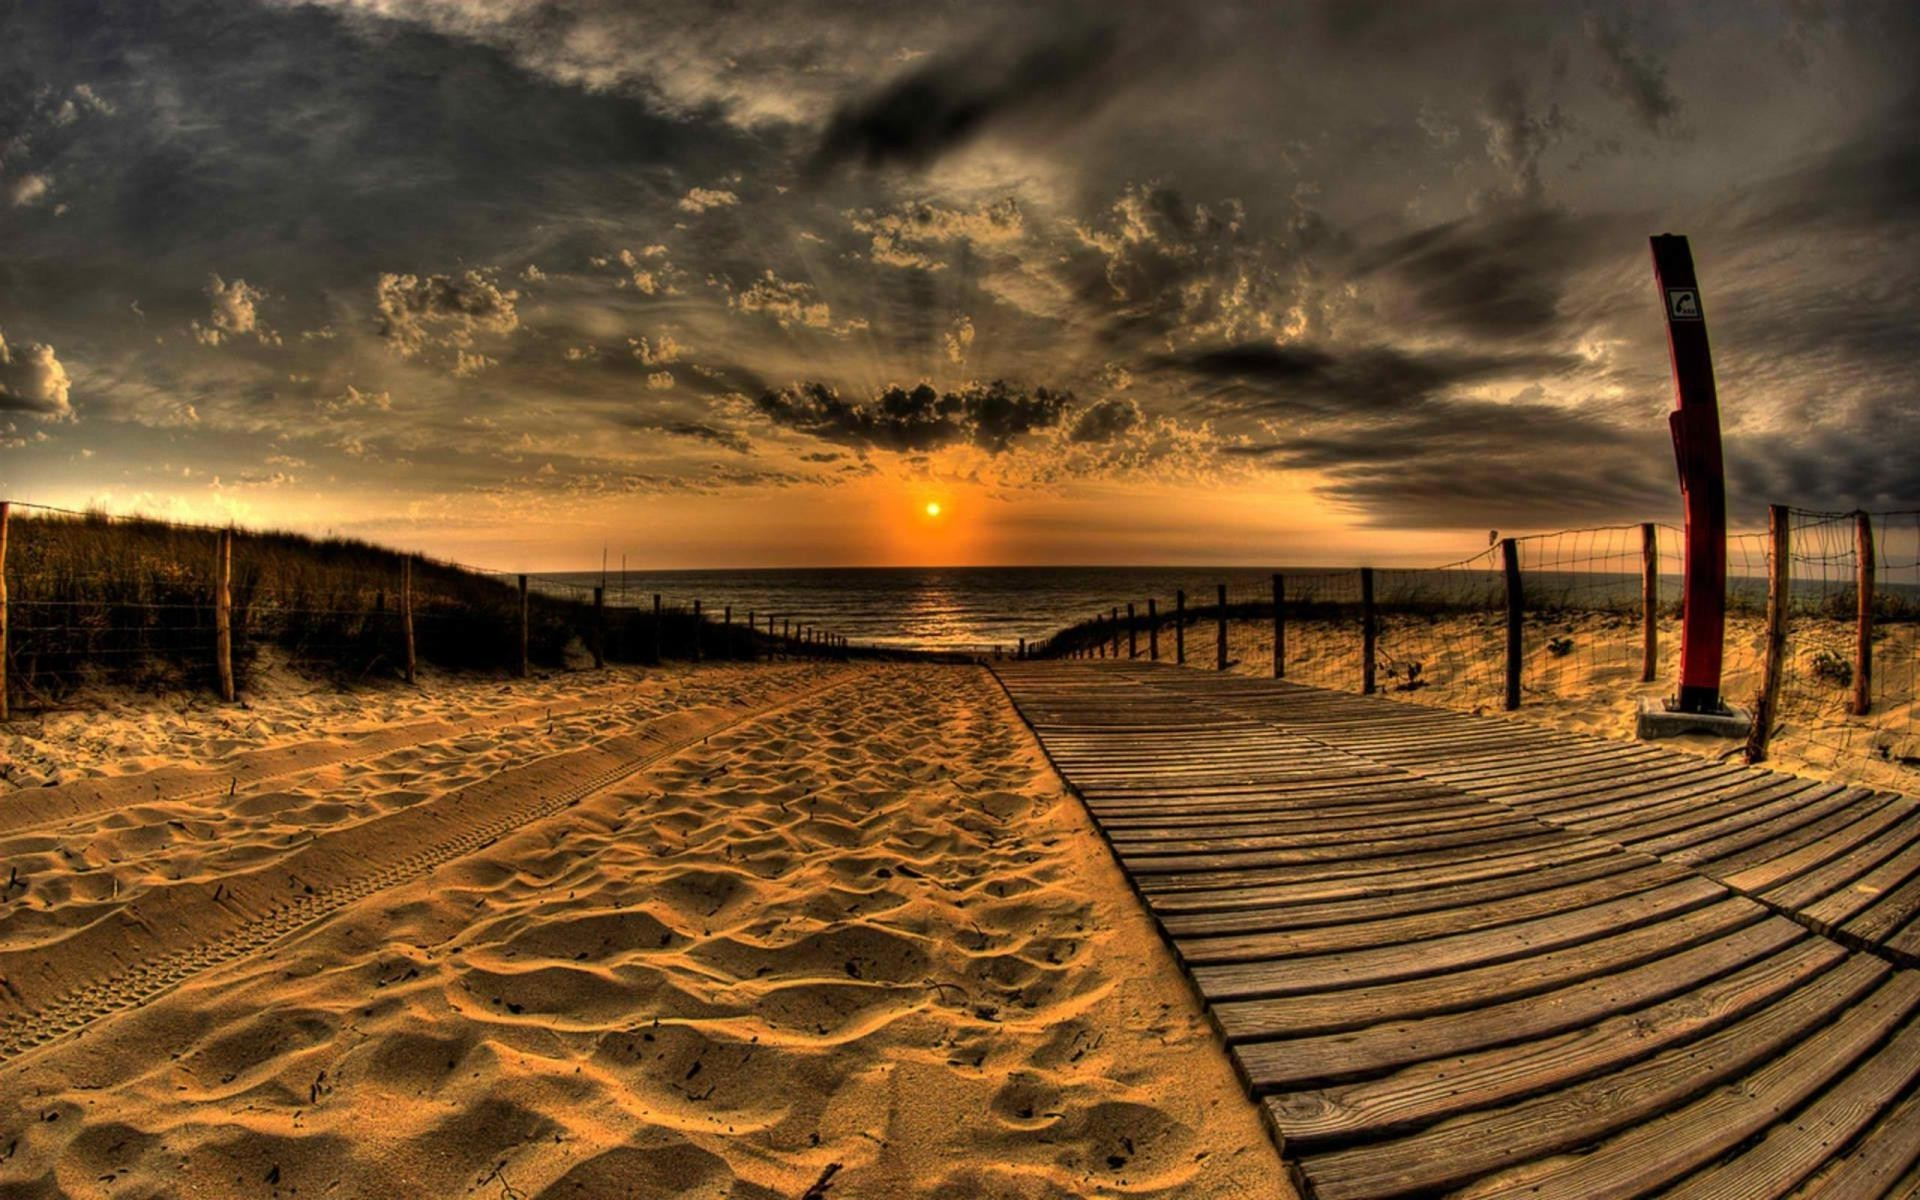 Wooden path in the sand